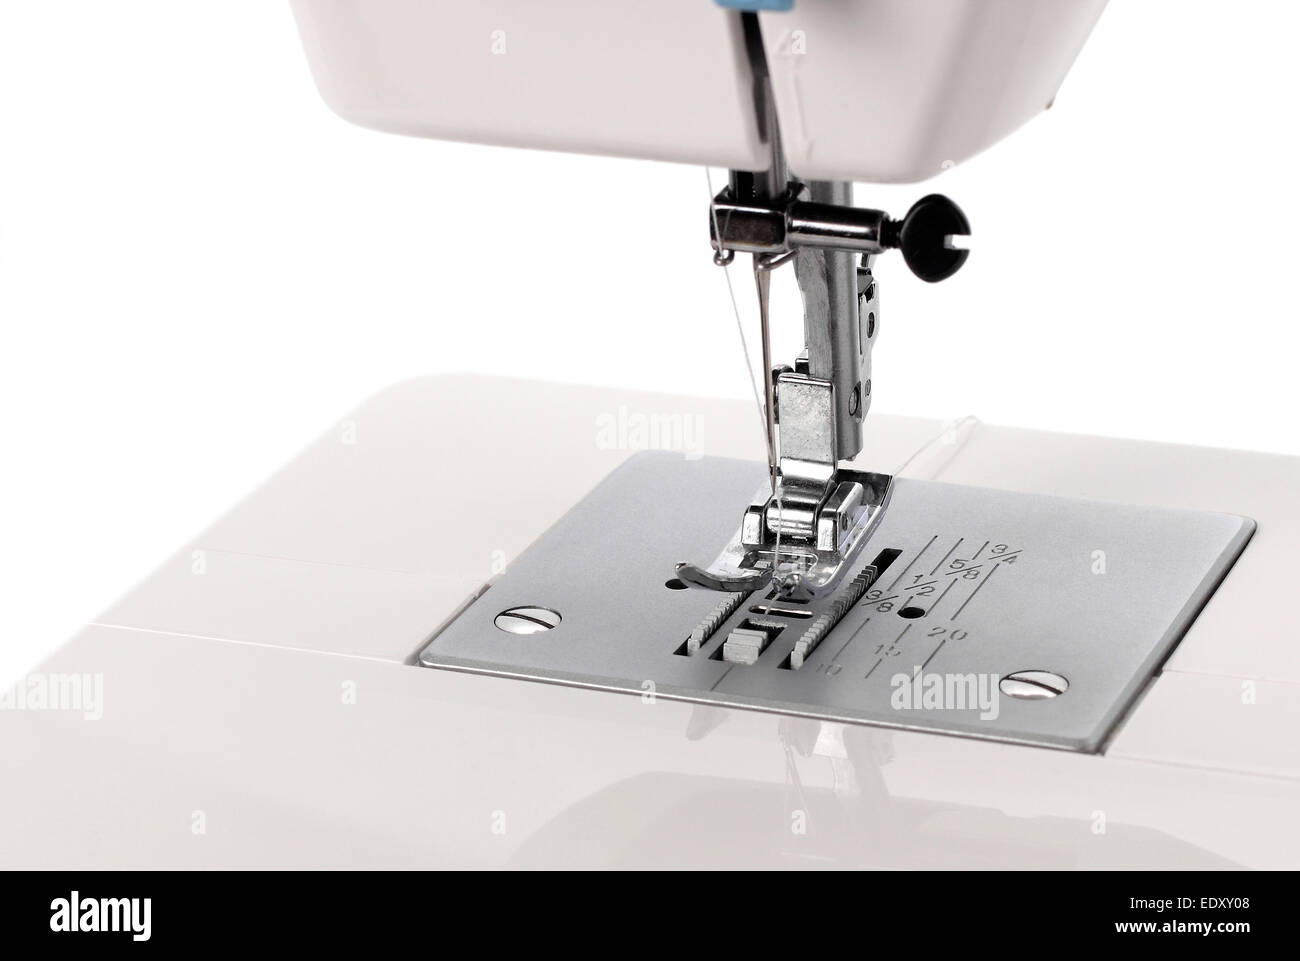 The image of the electrical sewing machine on a white background. - Stock Image